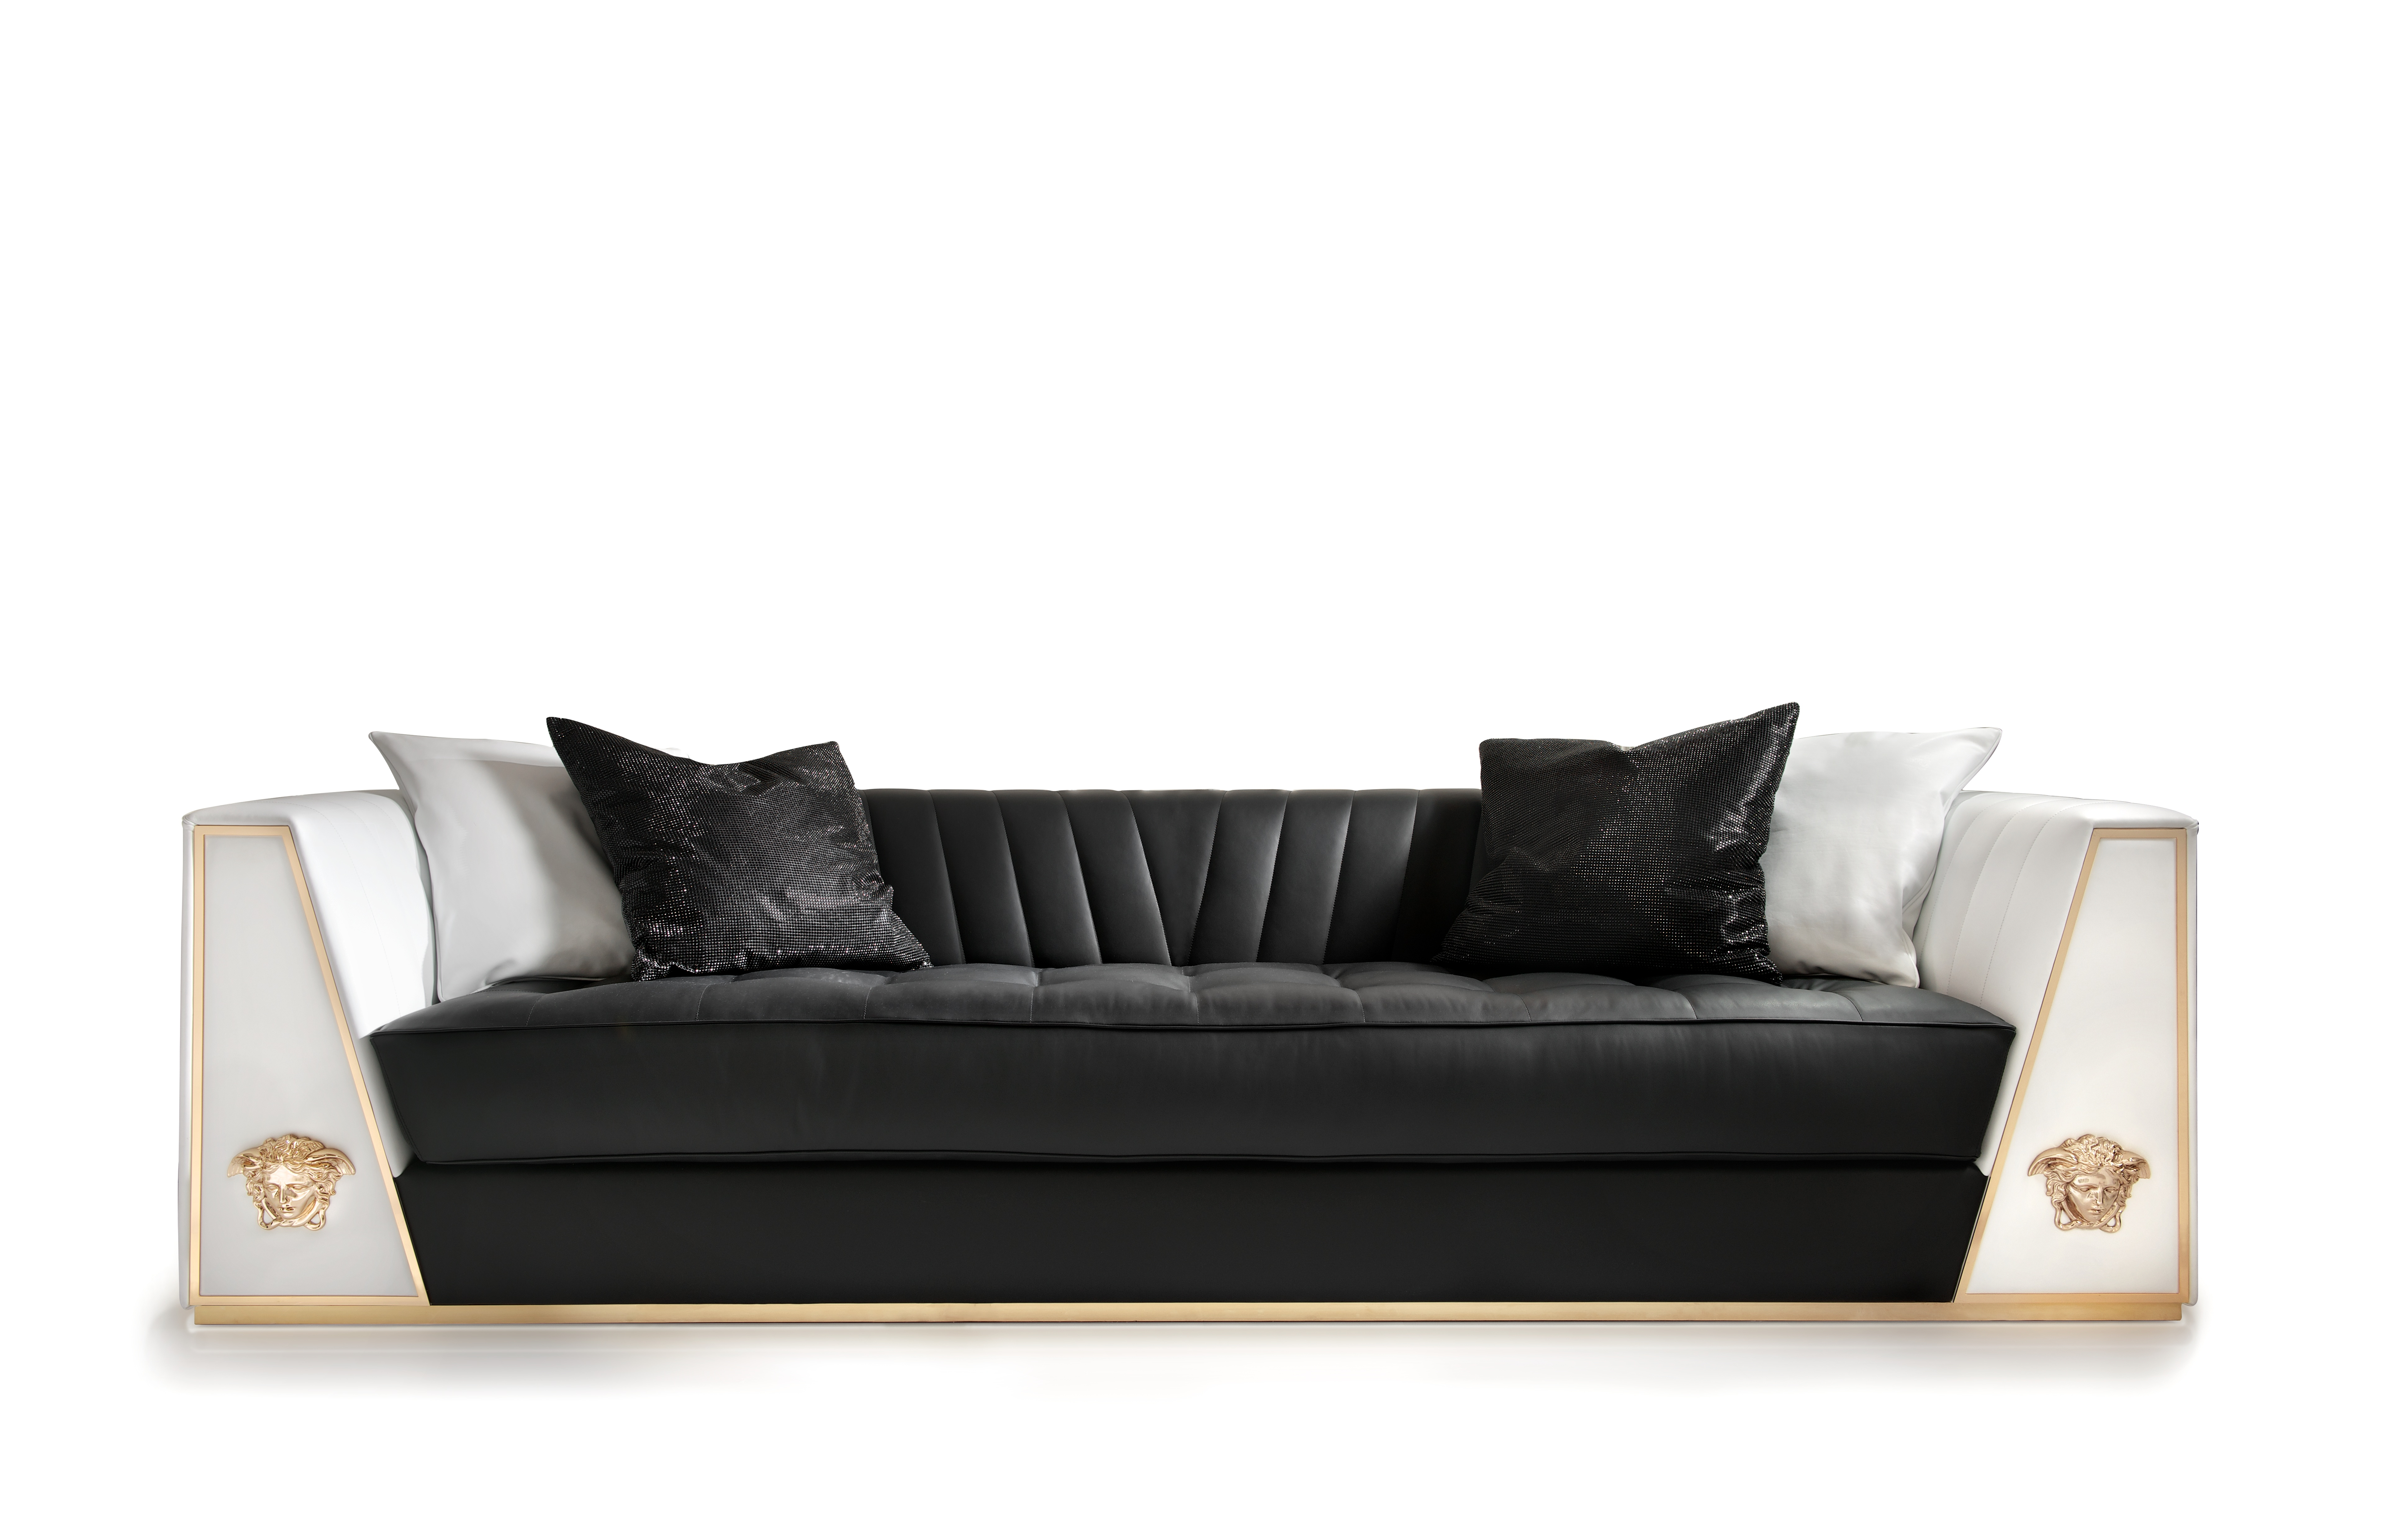 Versace home via ges sofa limited edition polkadot Xinlan home furniture limited